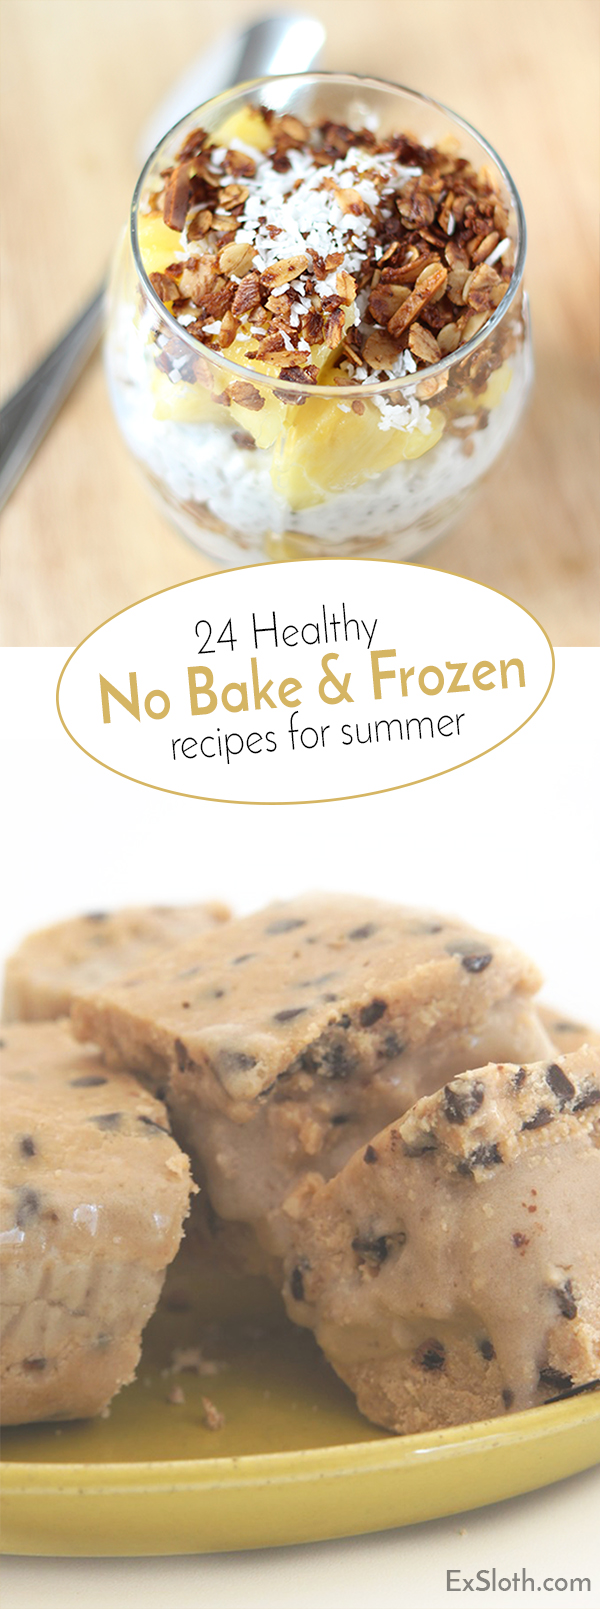 24 healthy no bake and frozen recipes to keep you cool this summer via @ExSloth | ExSloth.com